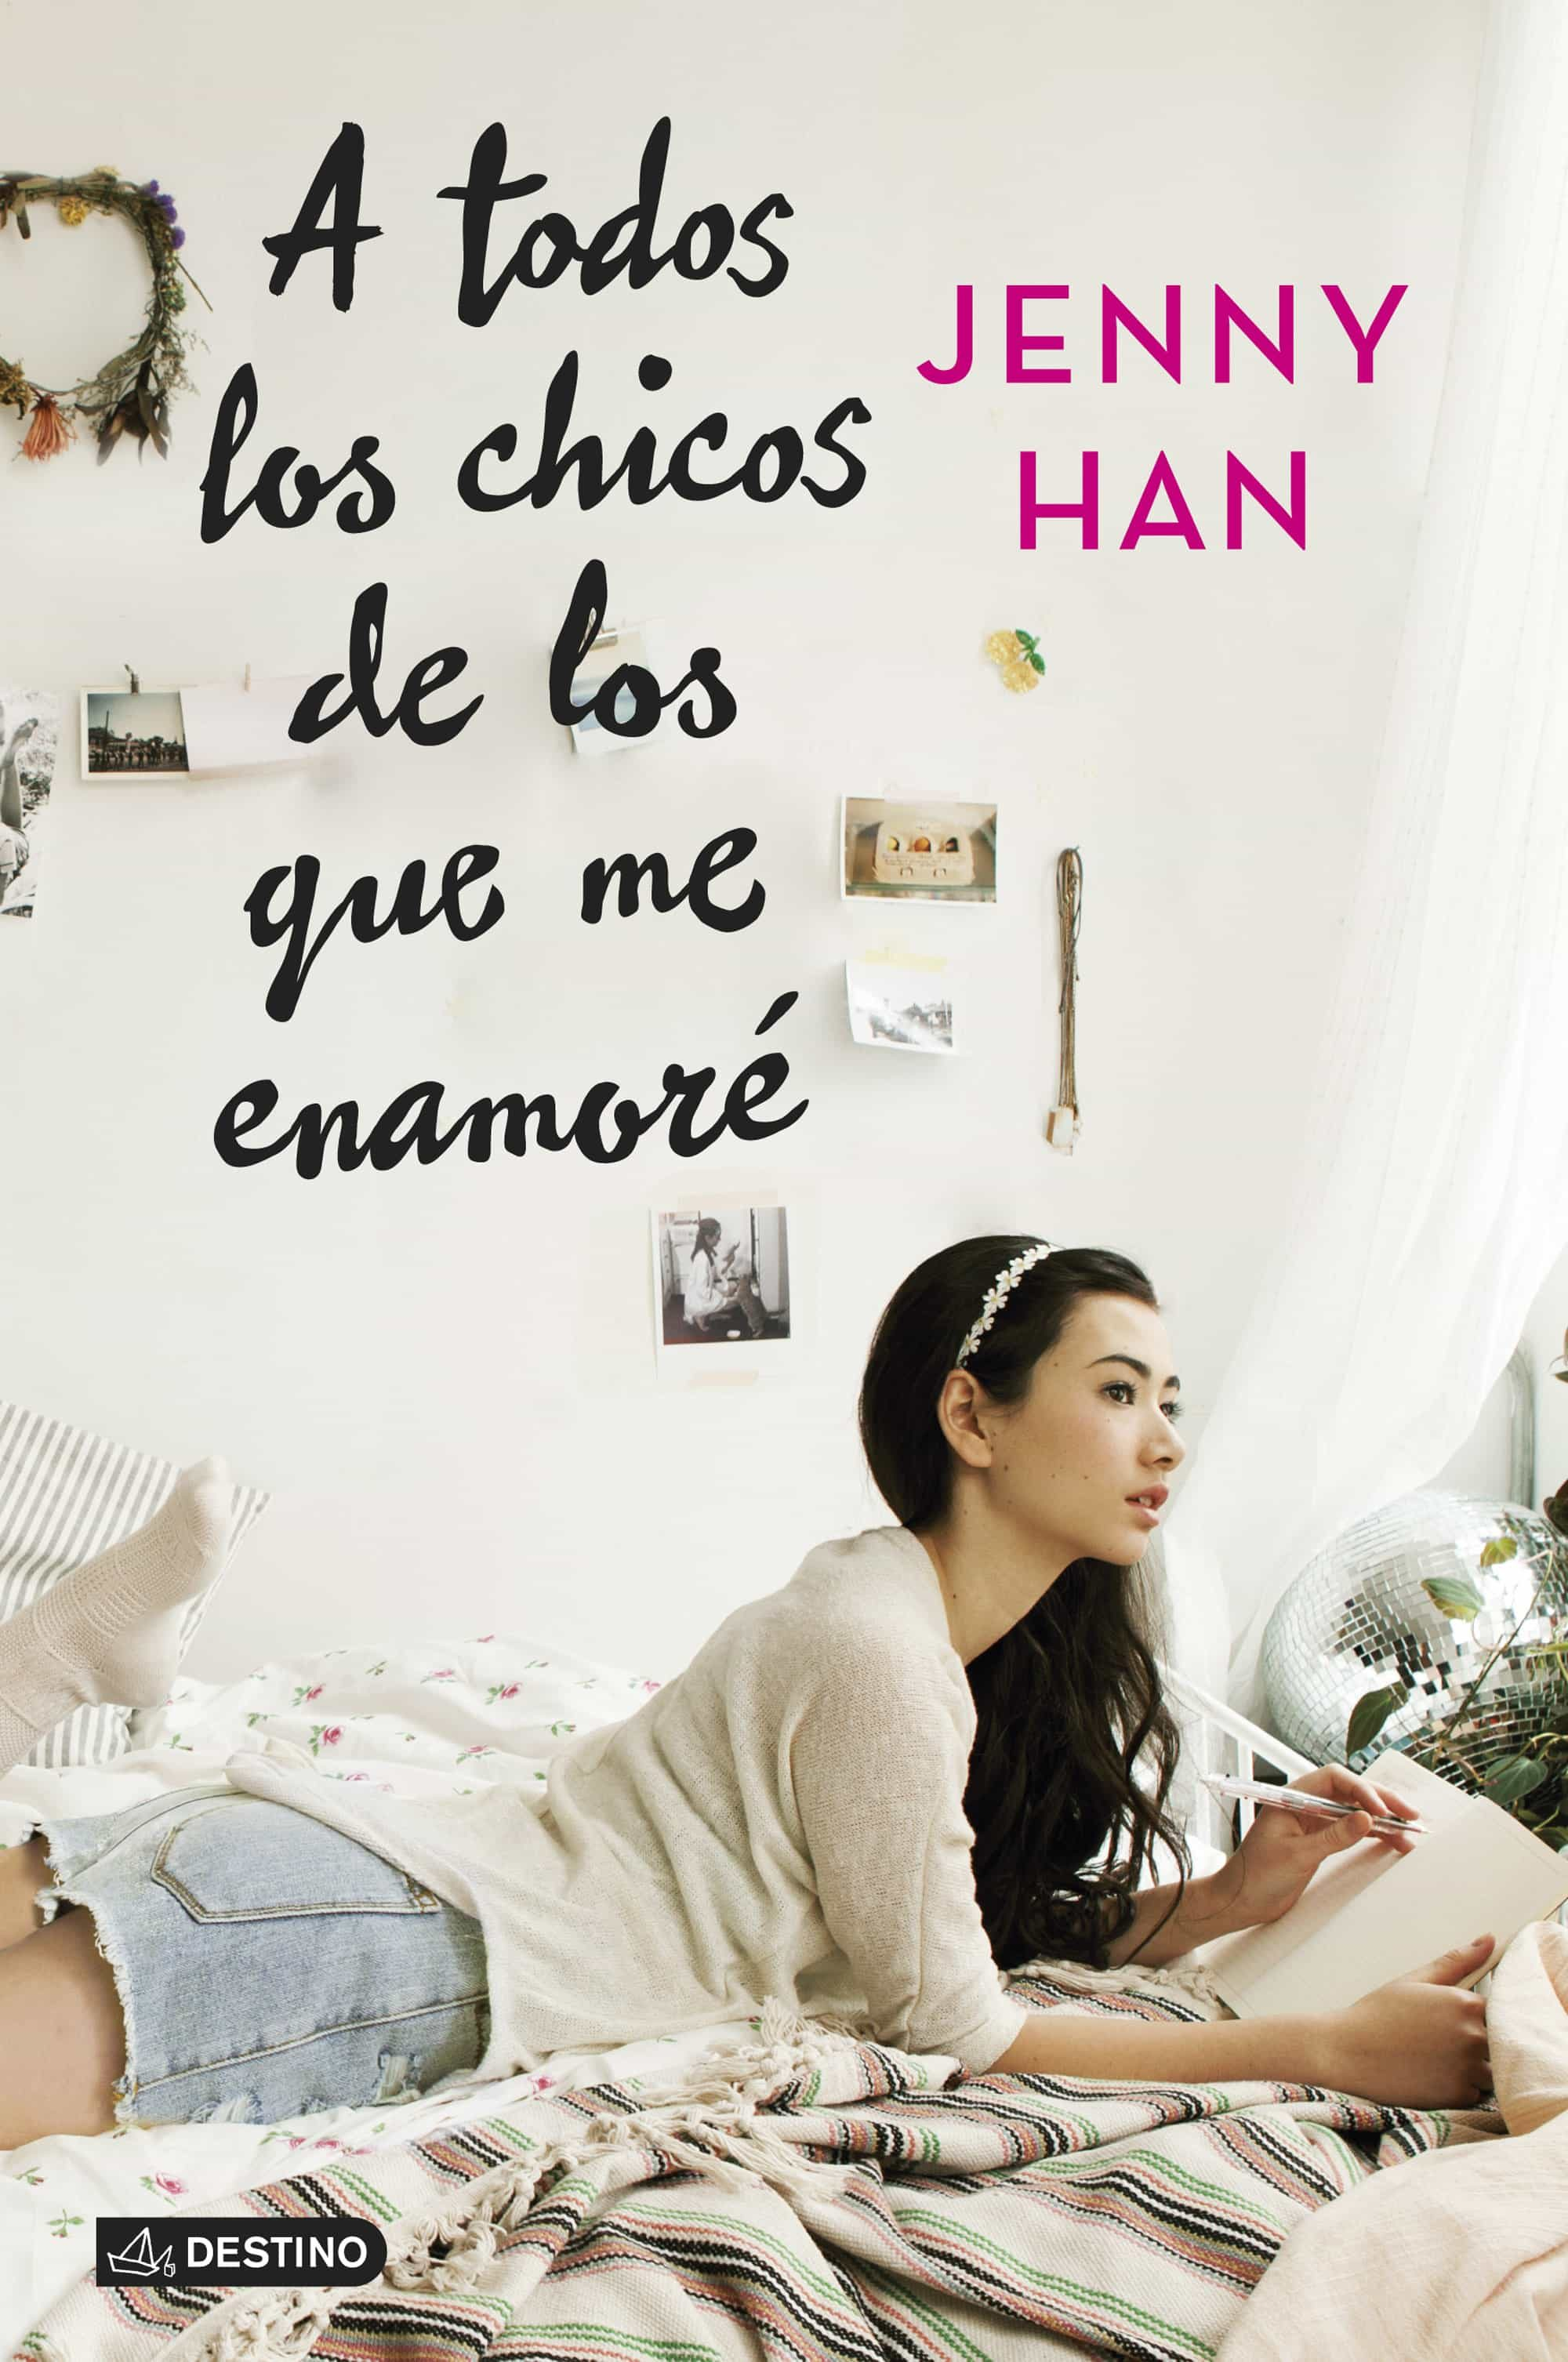 Ultimos Libros Juveniles Quotto All The Boys I 39ve Loved Before Quot De Jenny Han Será